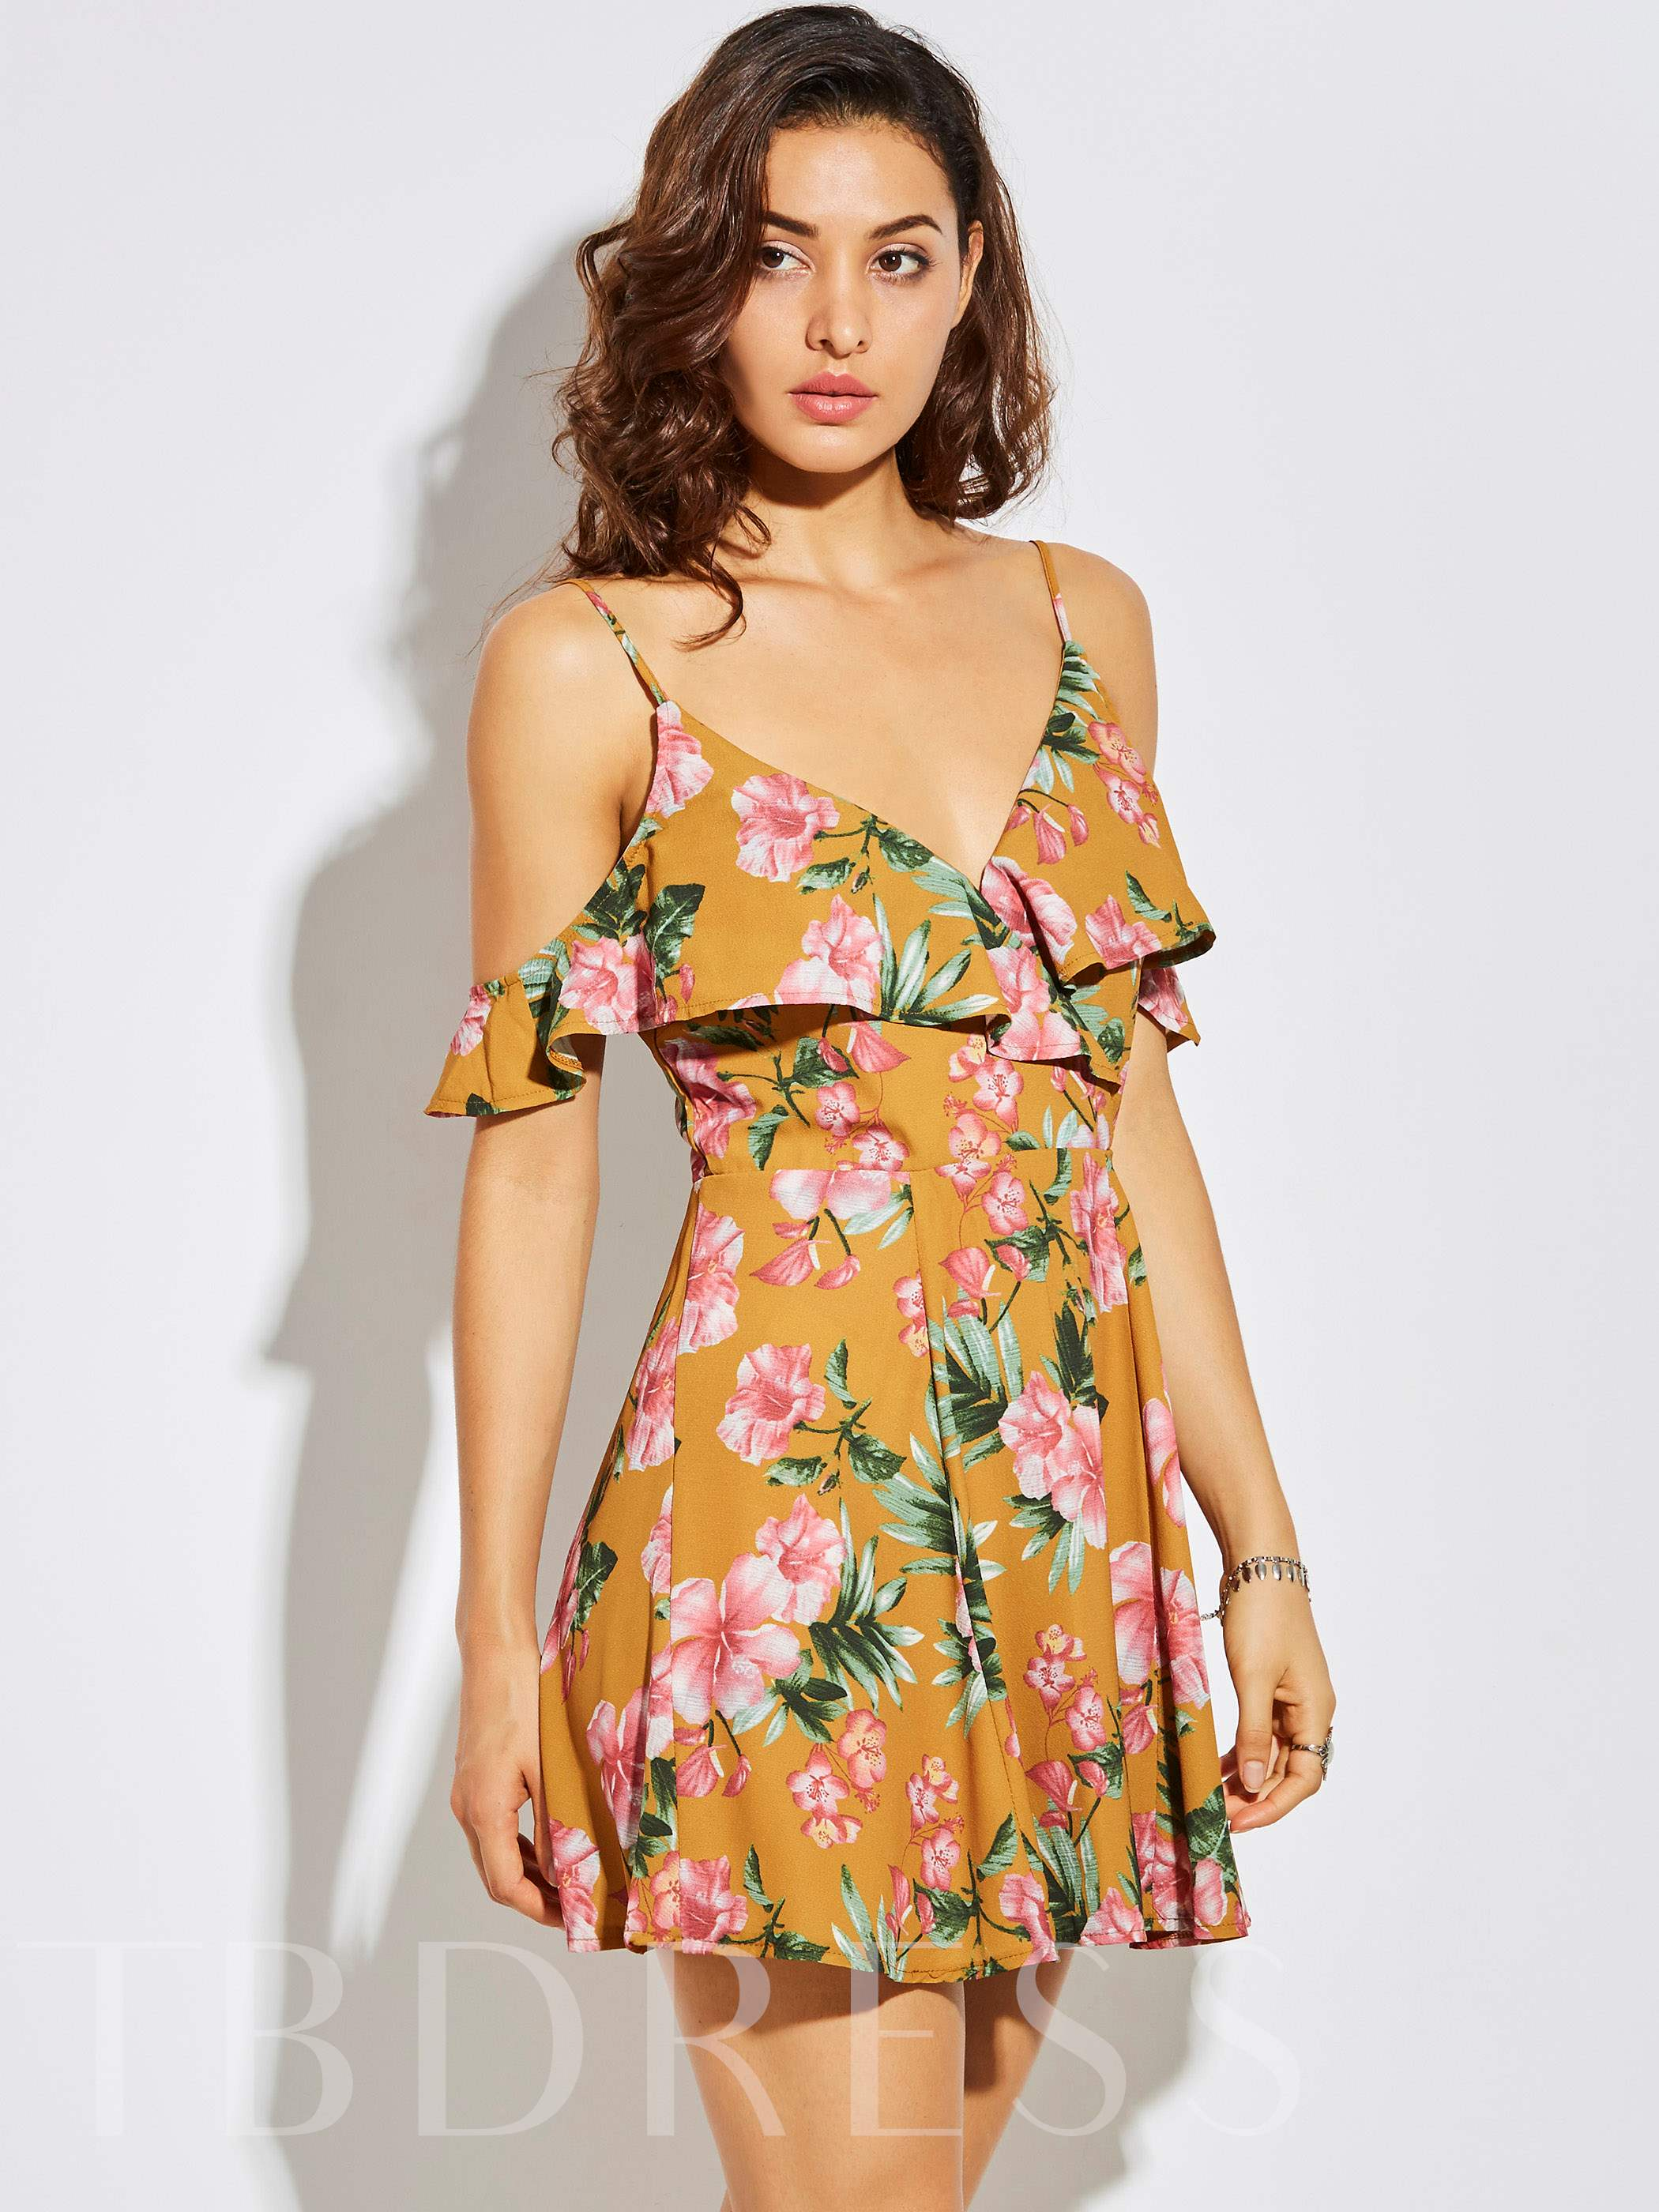 Buy Spaghetti Strap Backless Vacation Flower Print Women's A-Line Dress, Vintacy, Summer, 12876677 for $22.99 in TBDress store